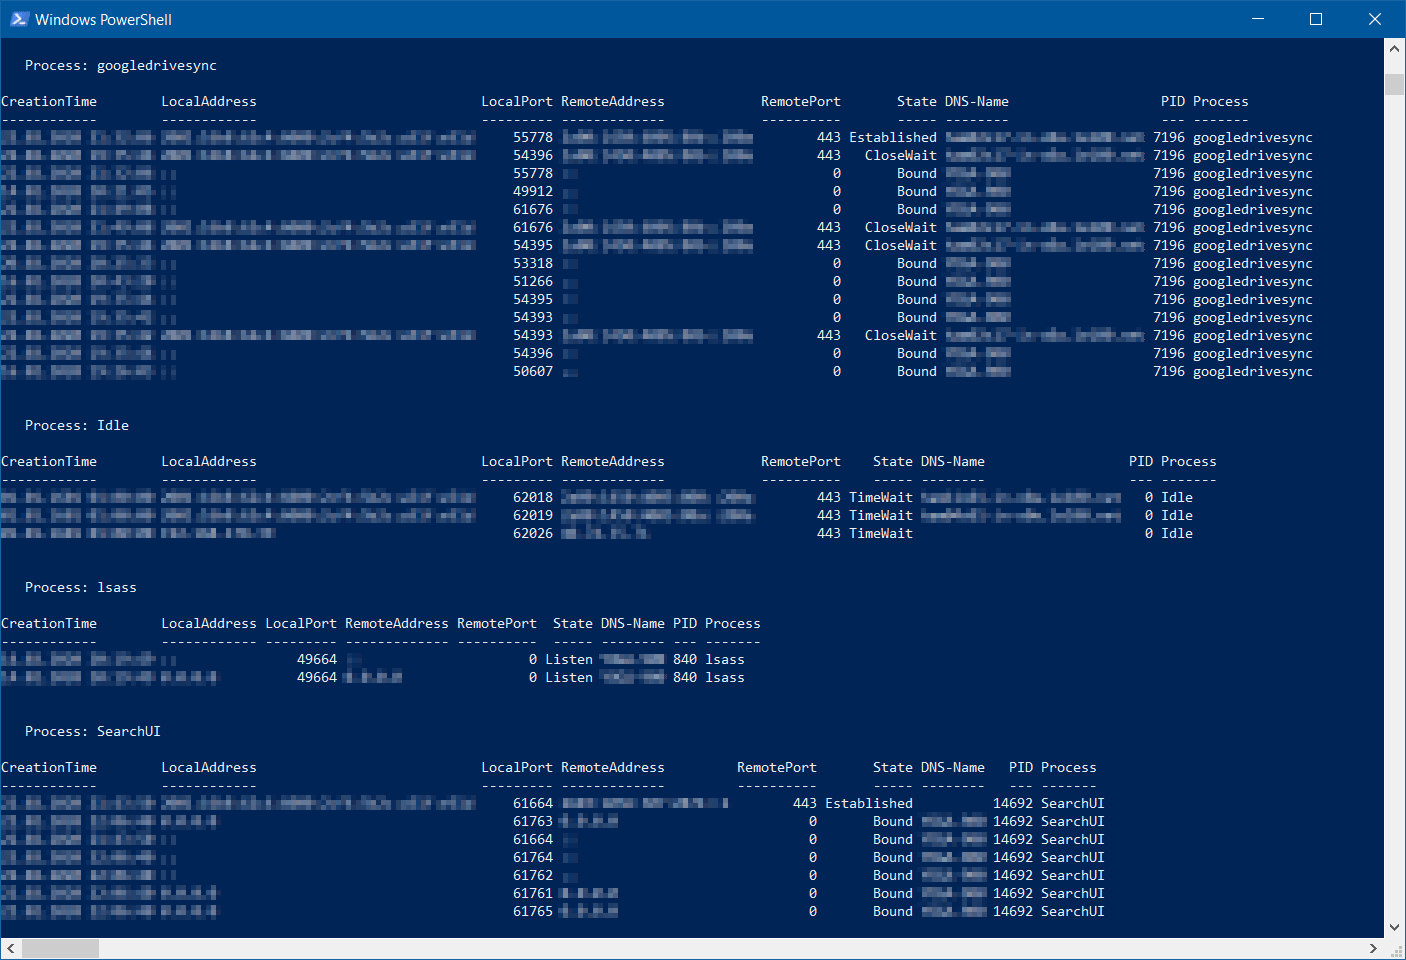 Get-NetTCPConnection - Verbindungen per PowerShell - netstat PowerShell Alternative inkl. DNS-Name und GRUPPIERT nach Anwendung